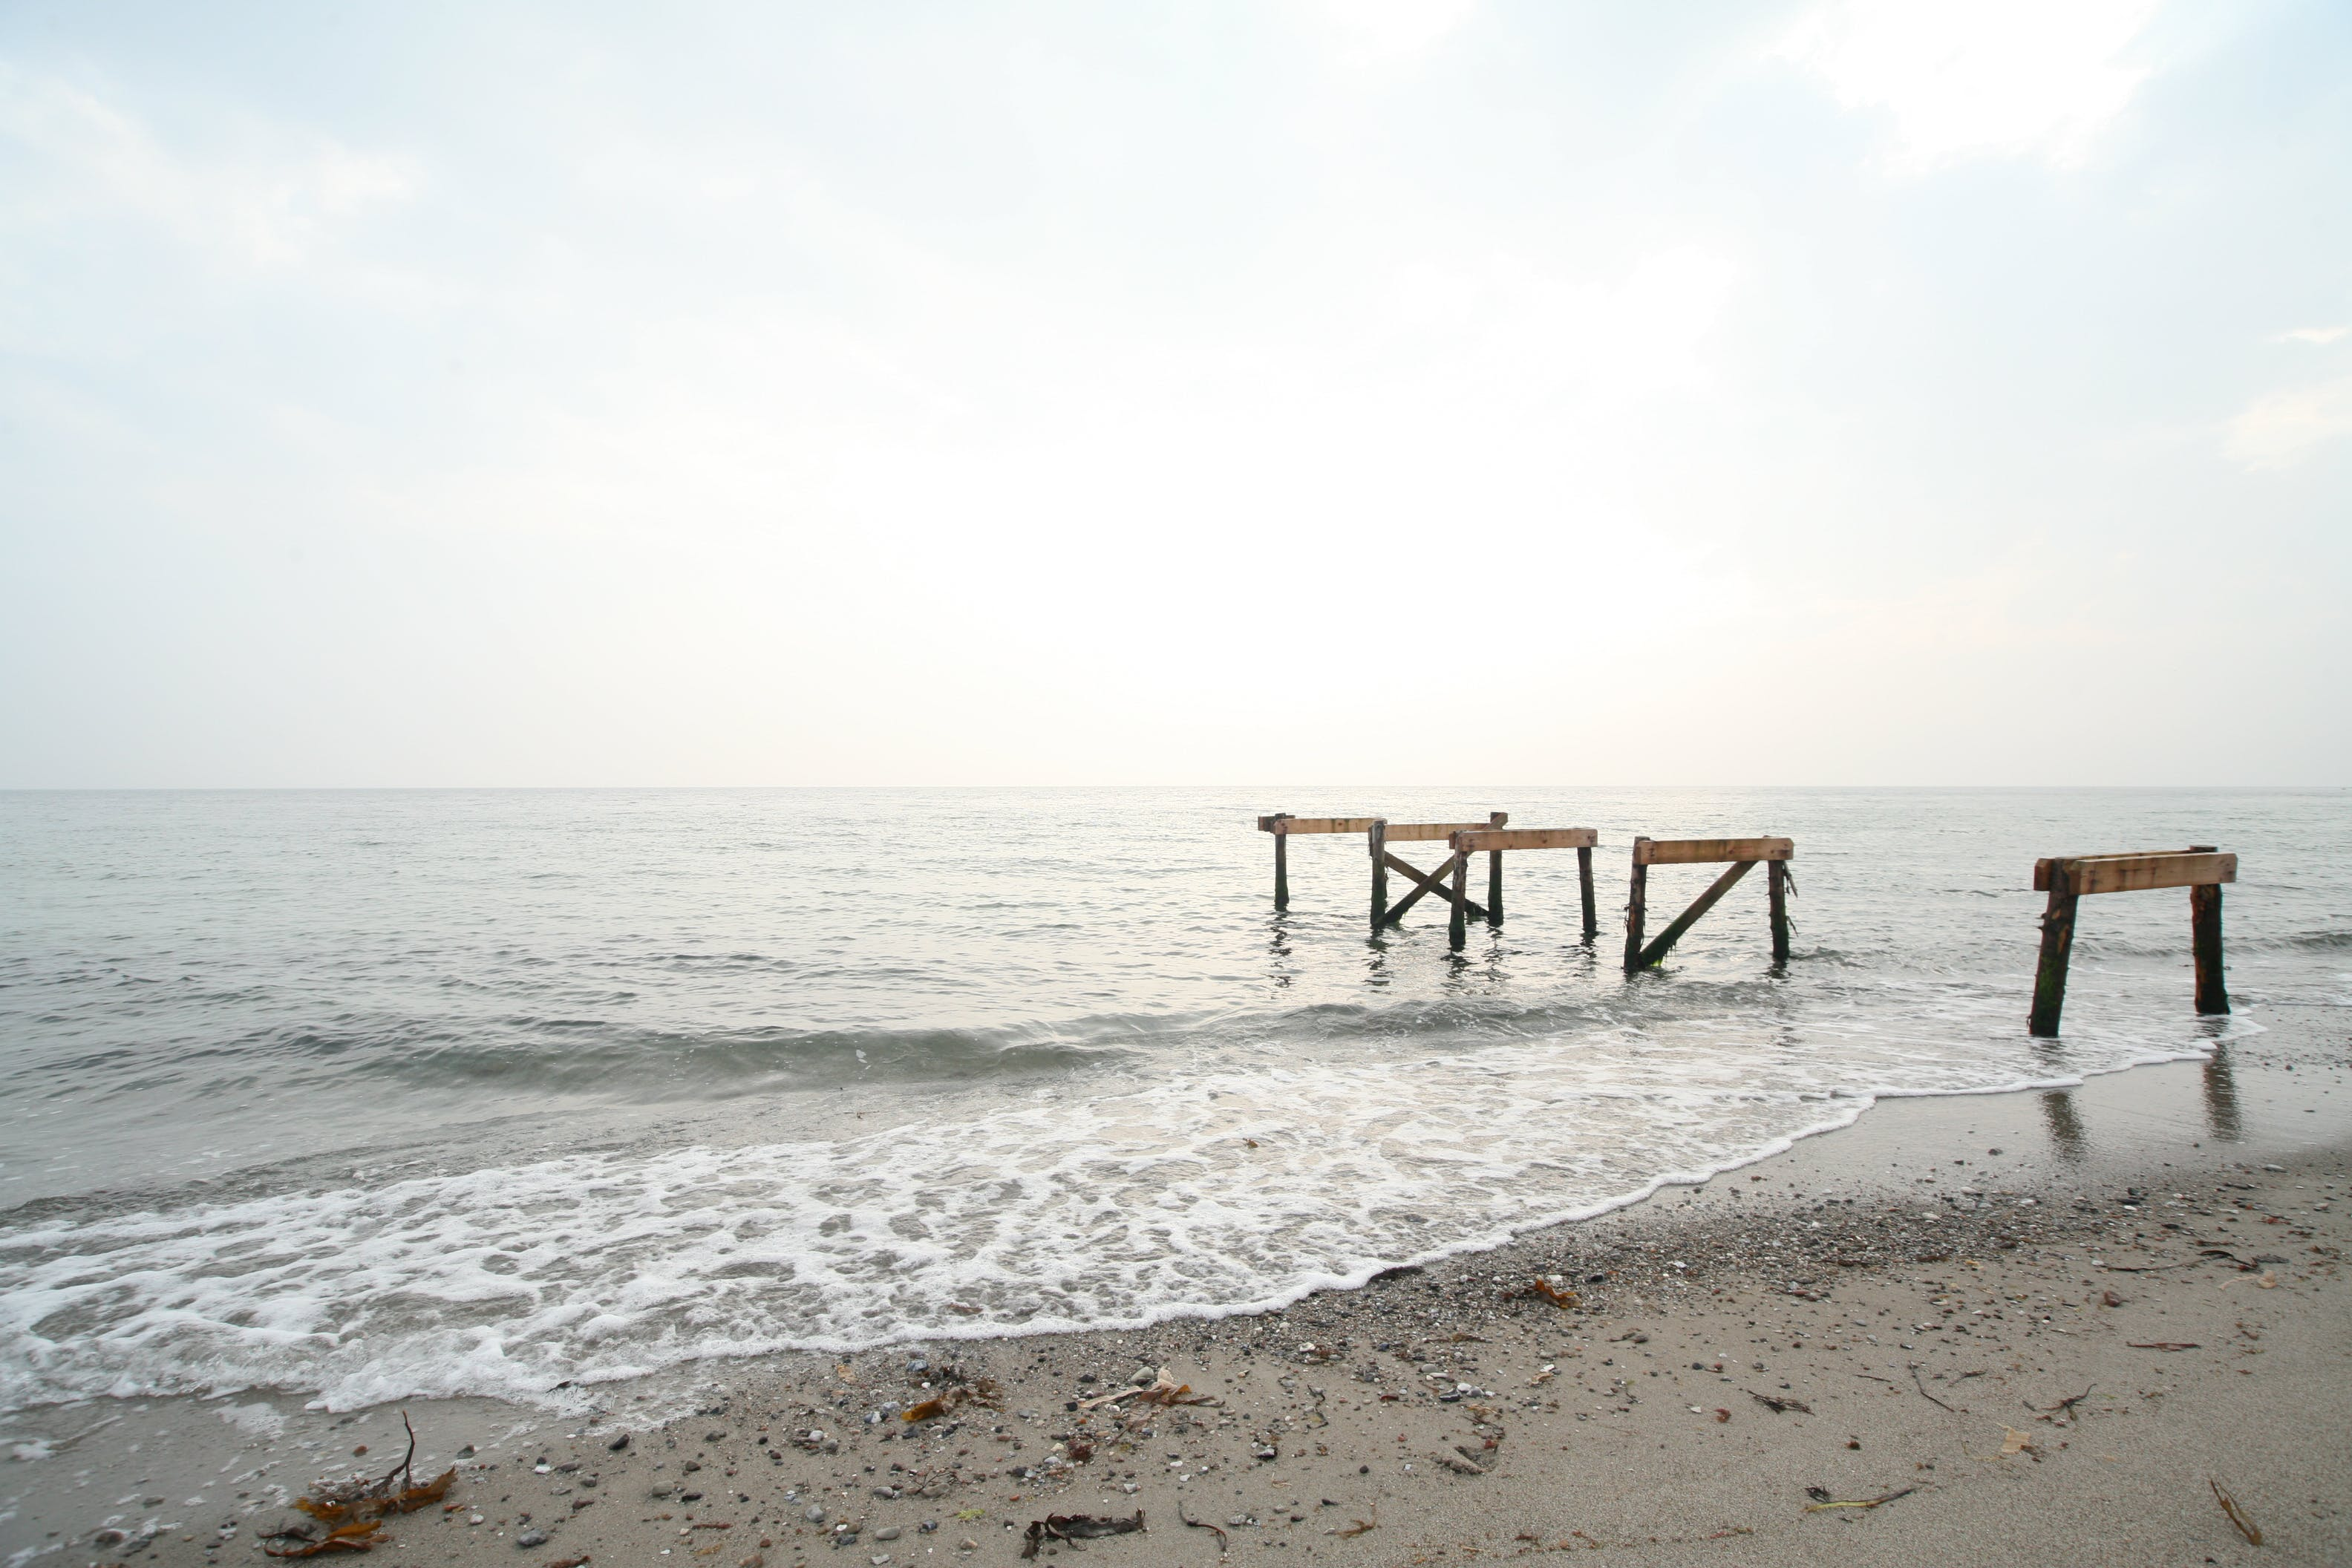 Brown Wooden Dock Frame on Sea Shore